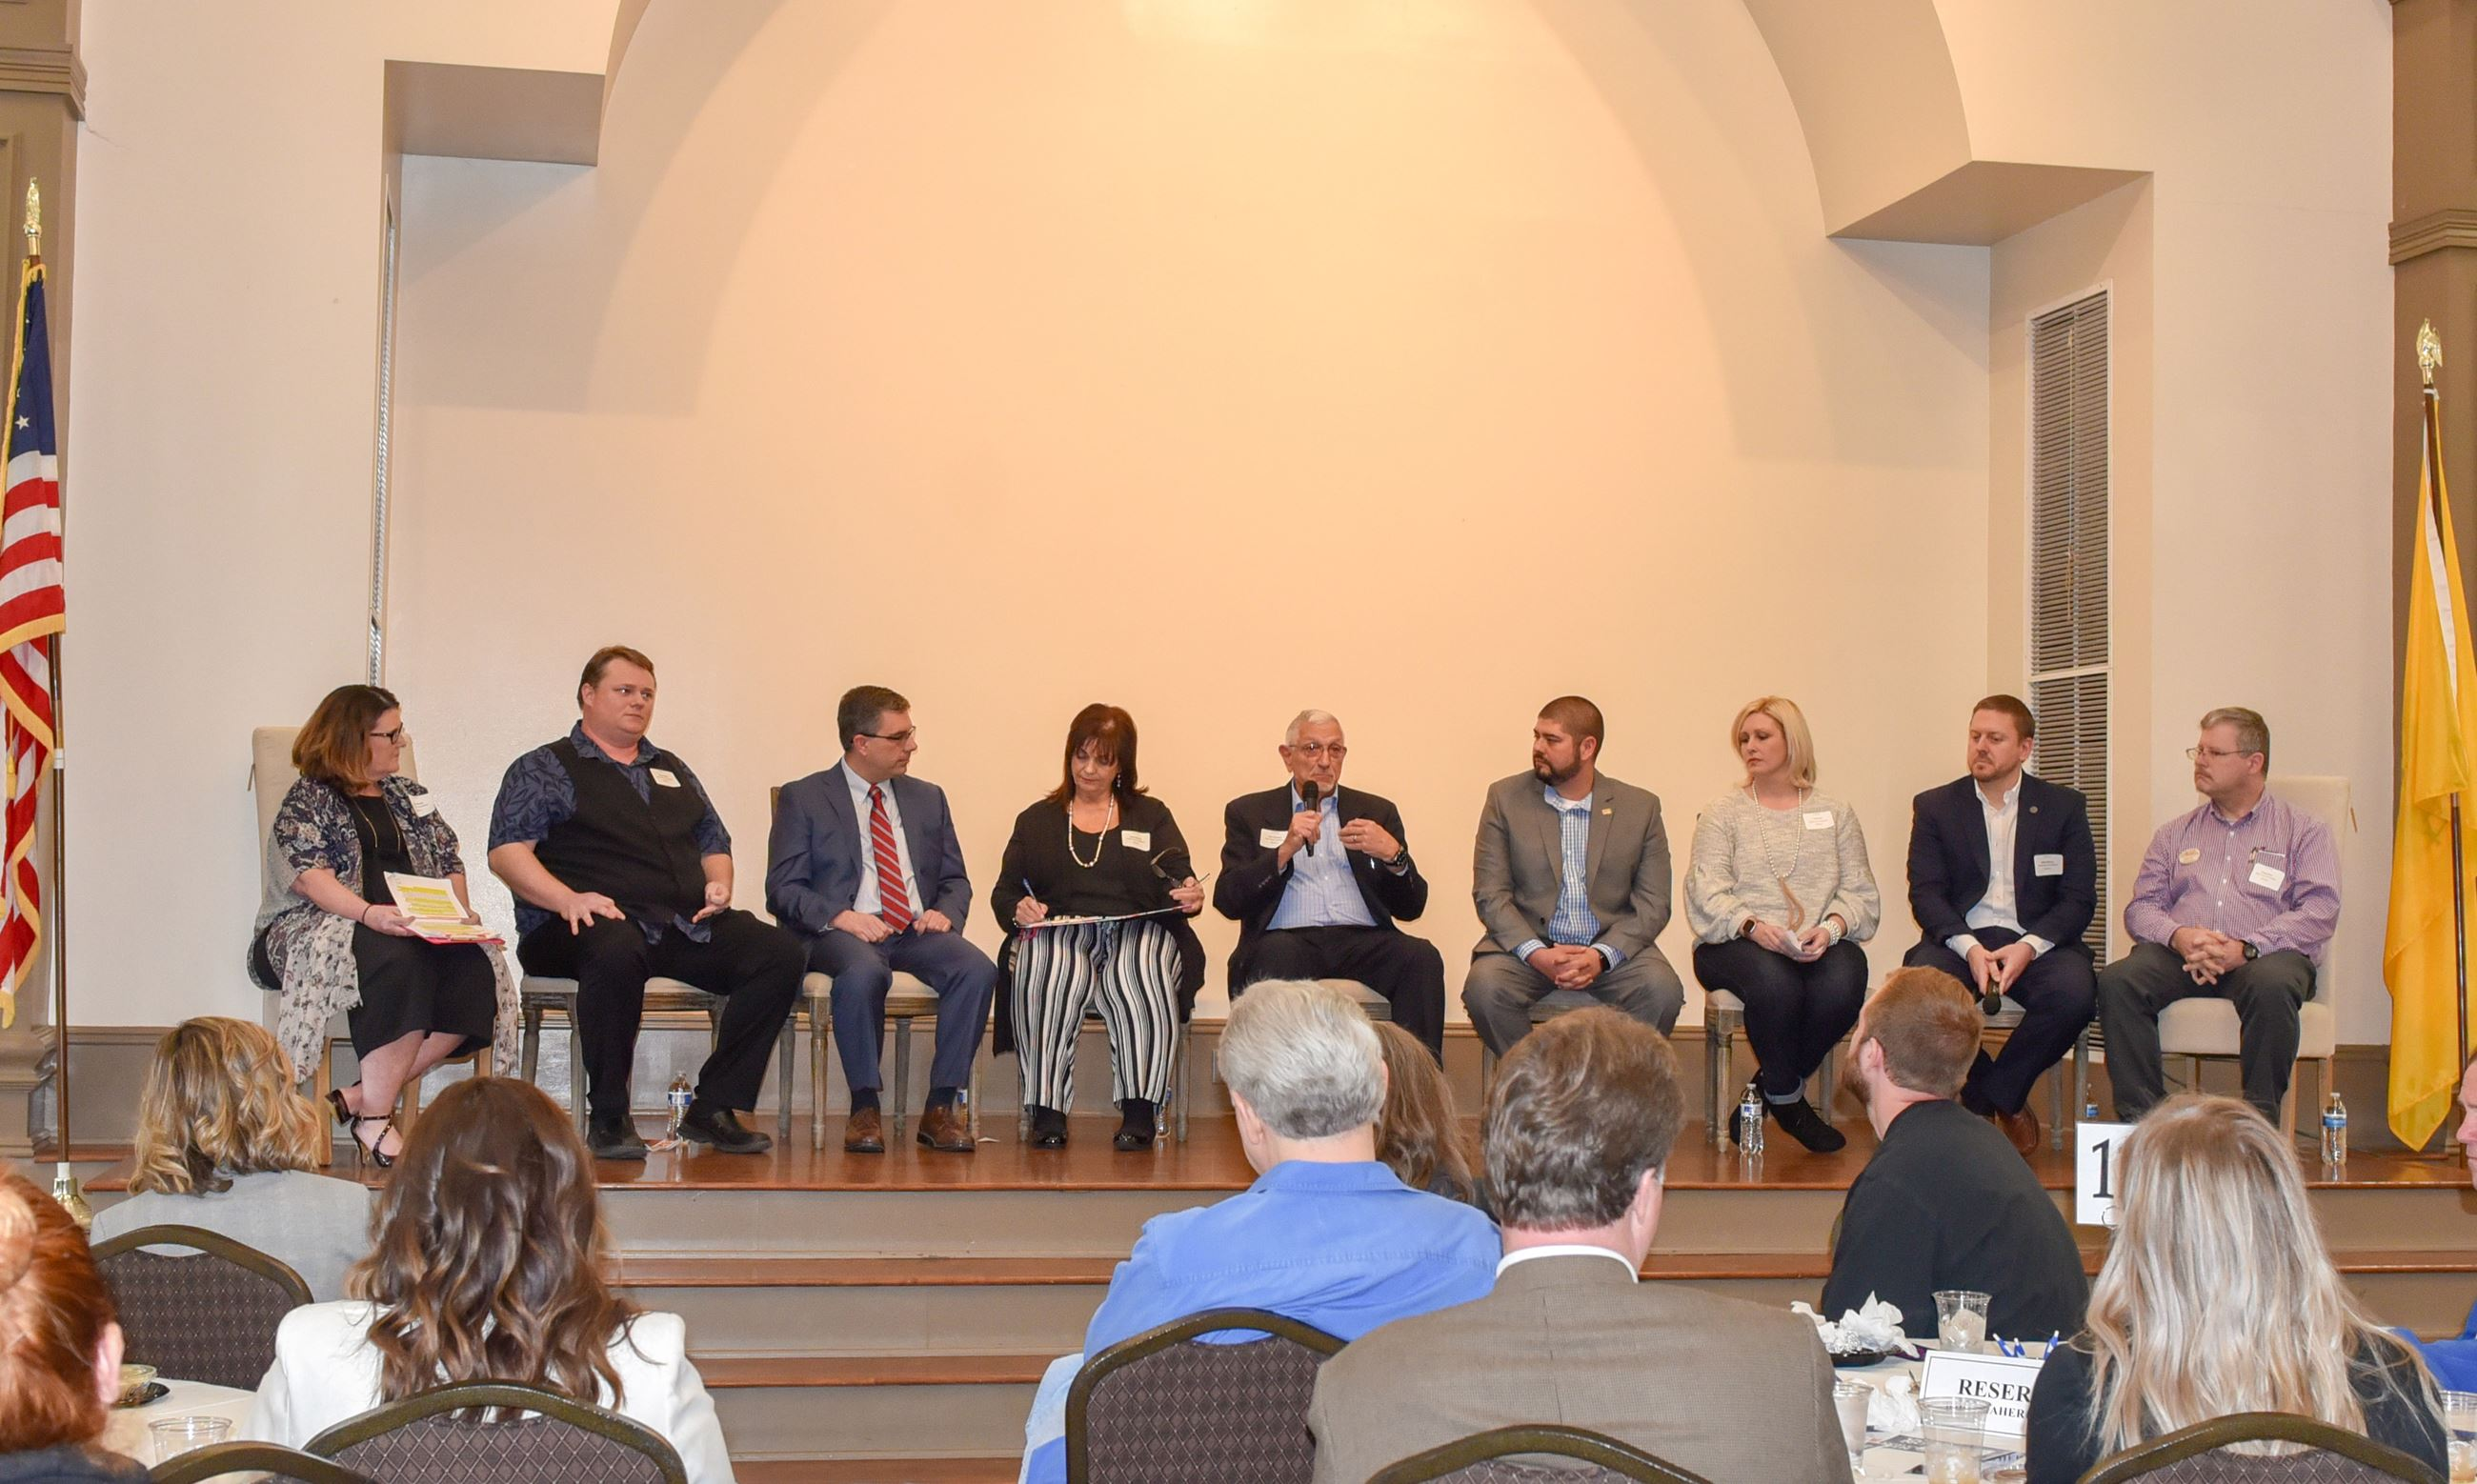 Alderman candidates participating in the February 2019 Meet the Candidates event